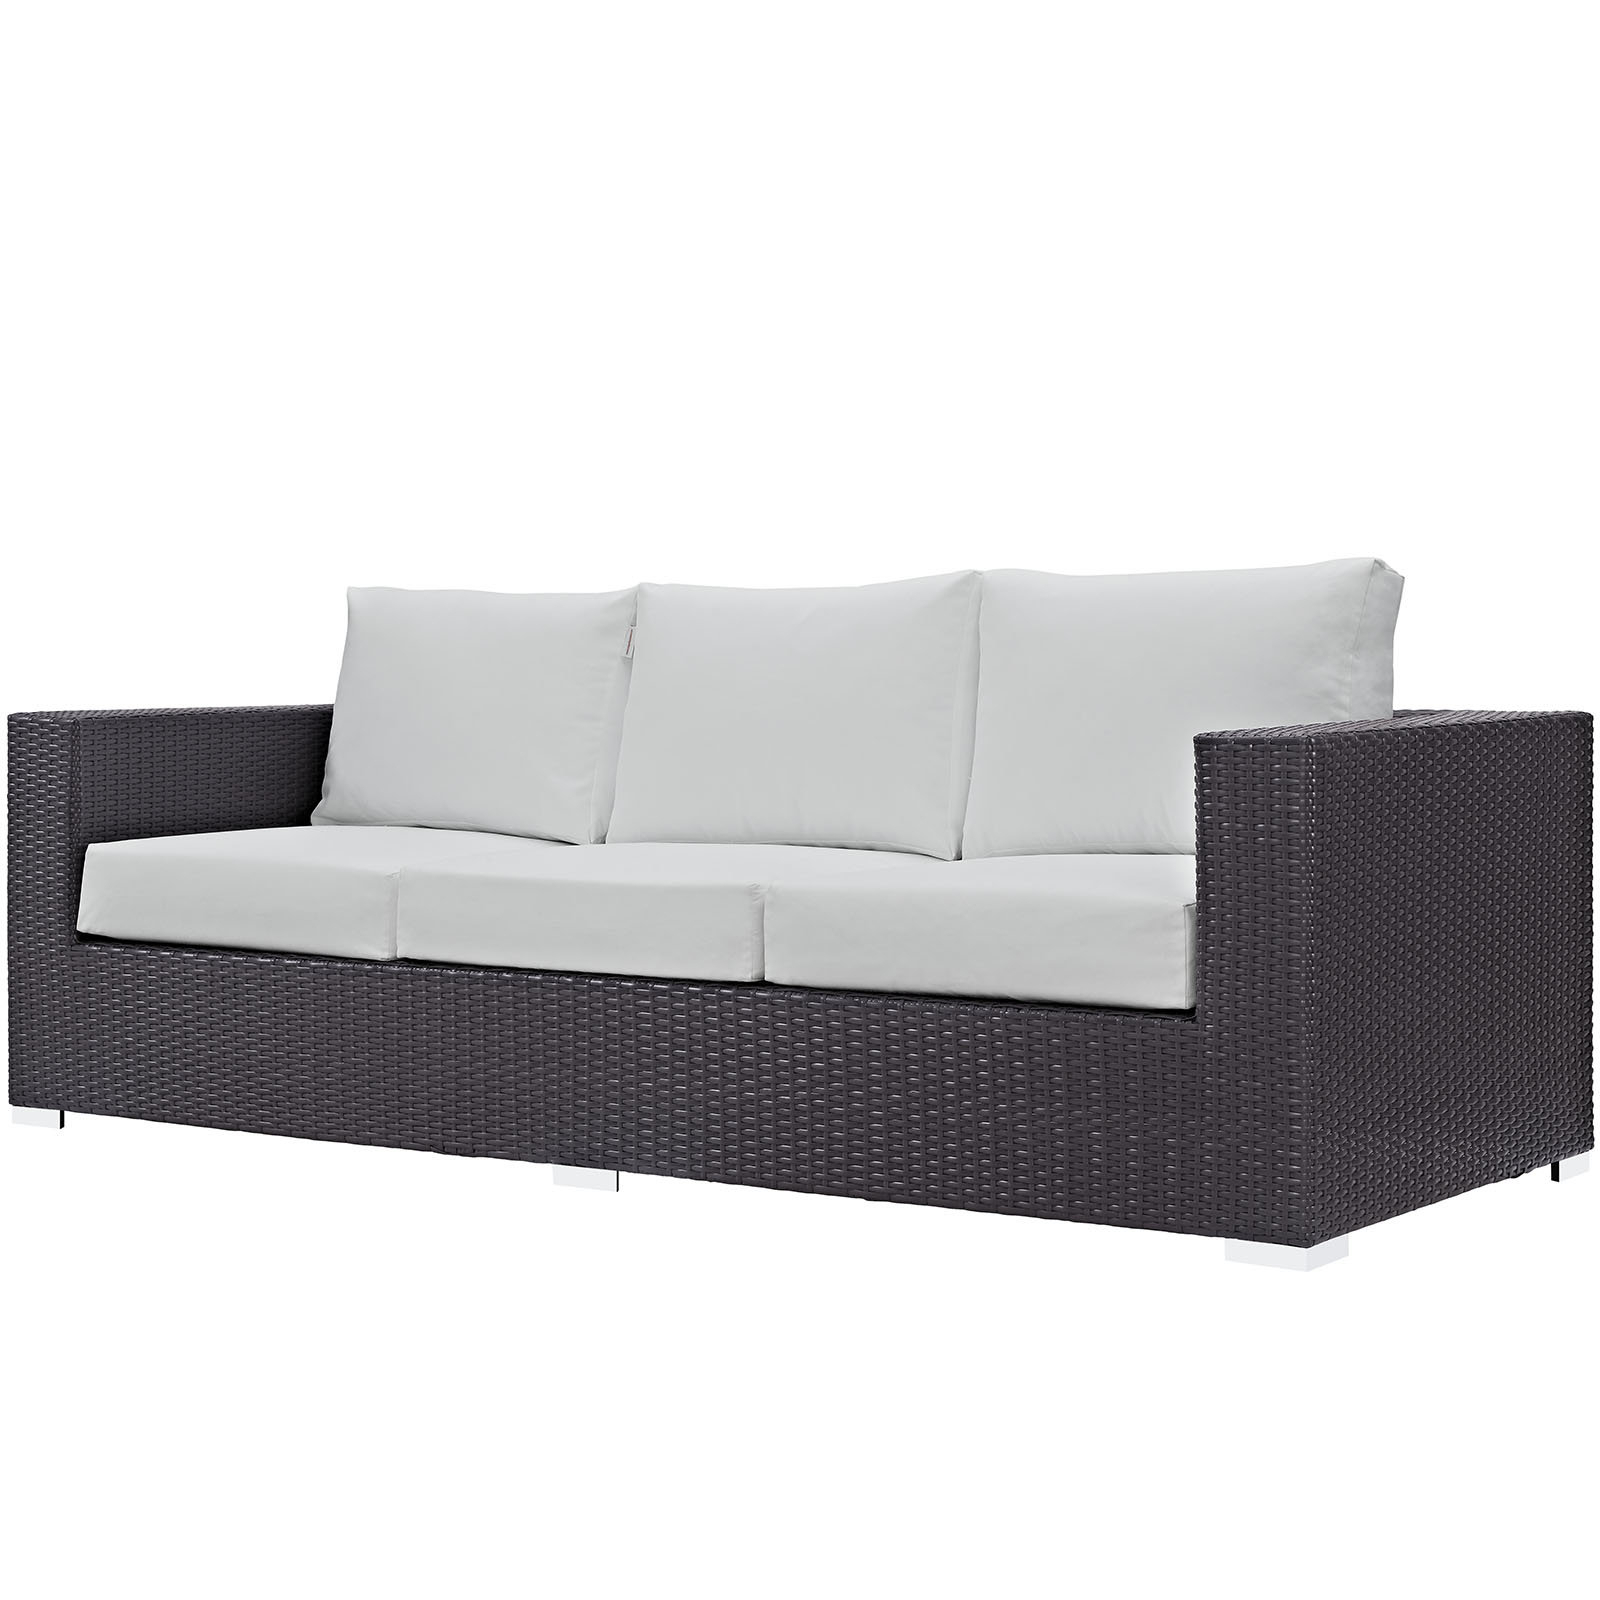 Most Recent Brentwood Patio Sofa With Cushions & Reviews (View 9 of 20)